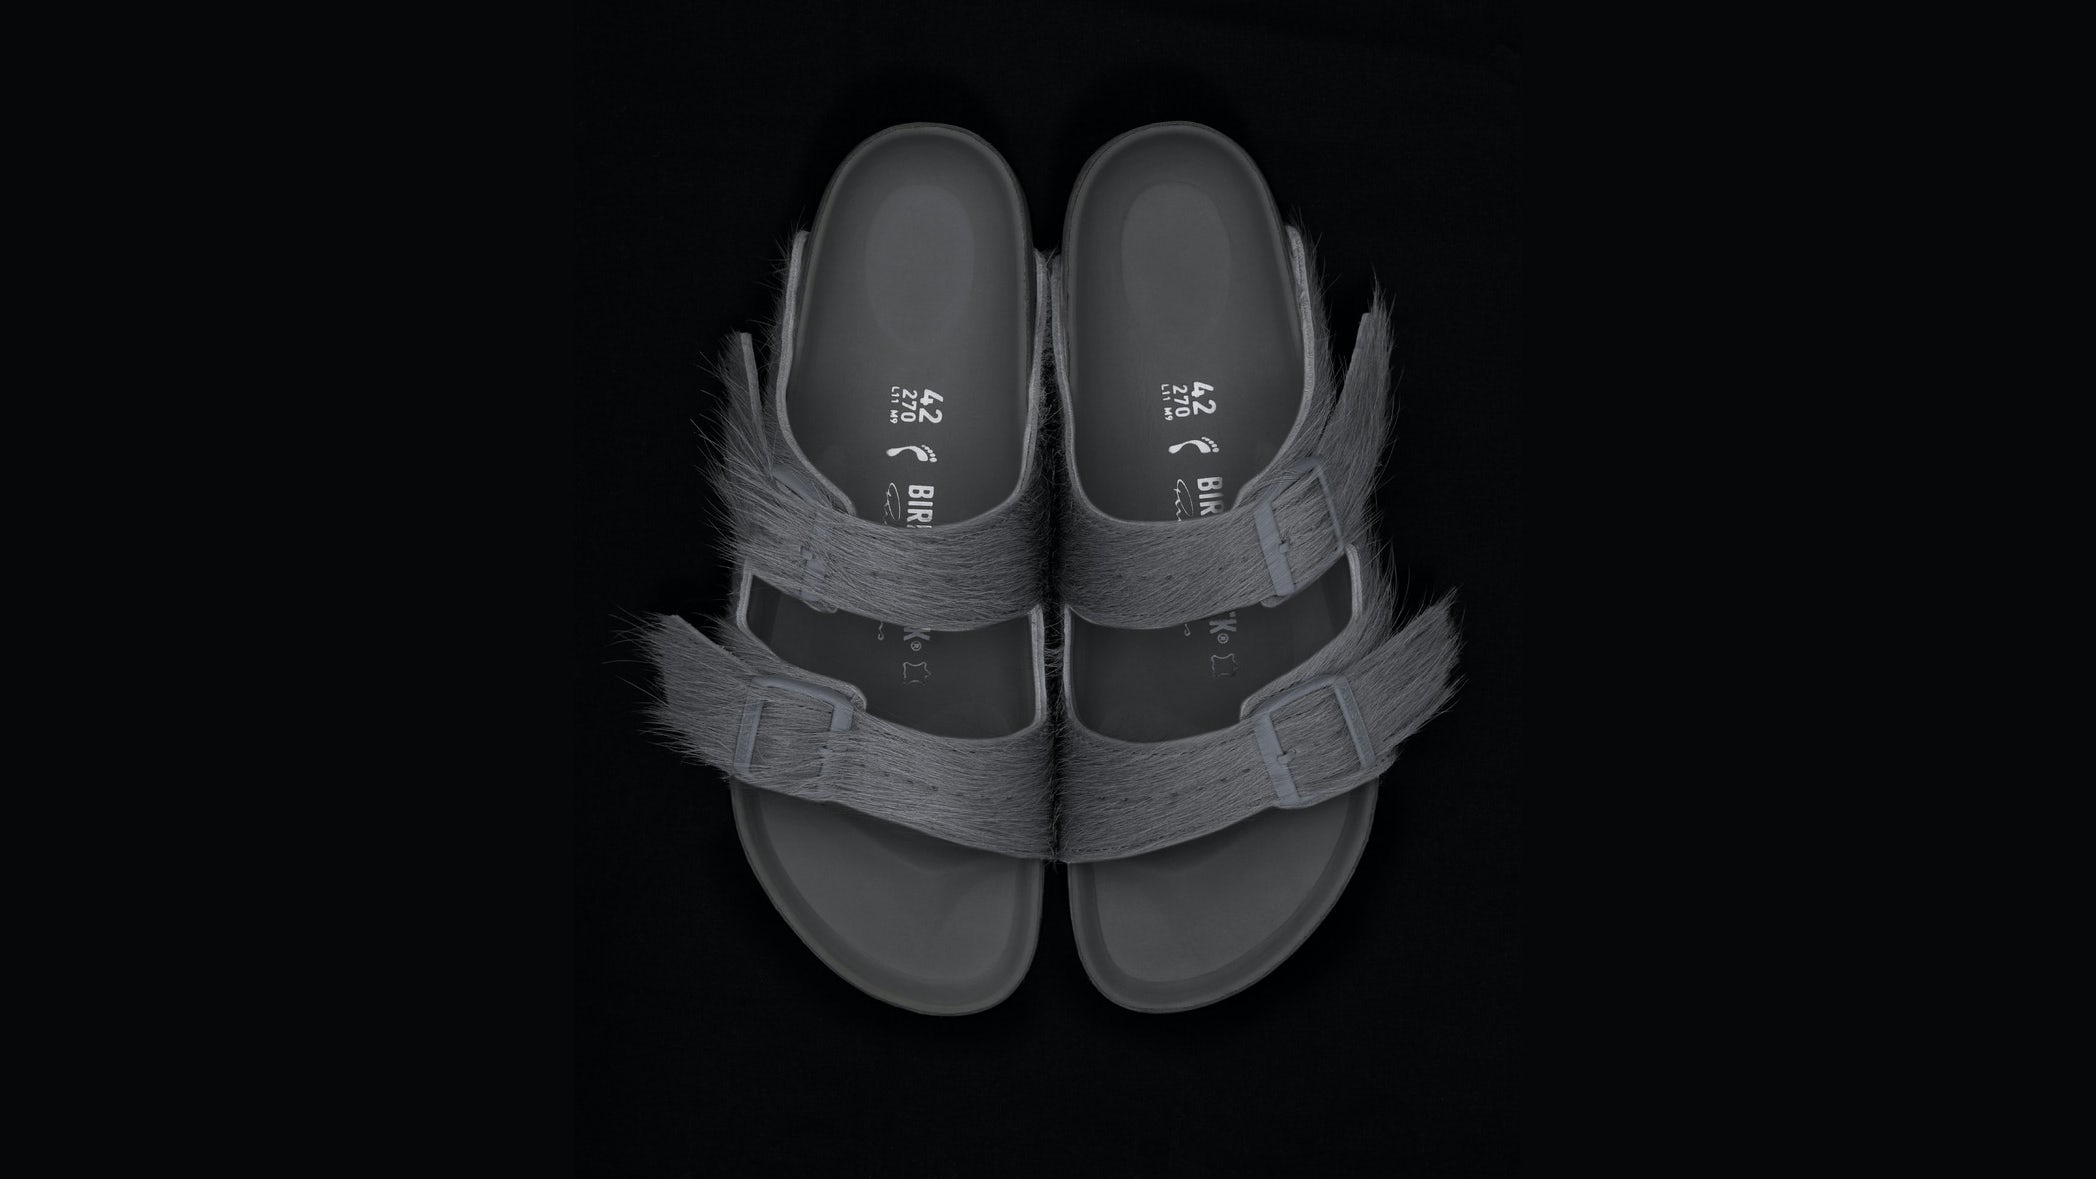 Rick Owens x Birkenstock | Source: Courtesy